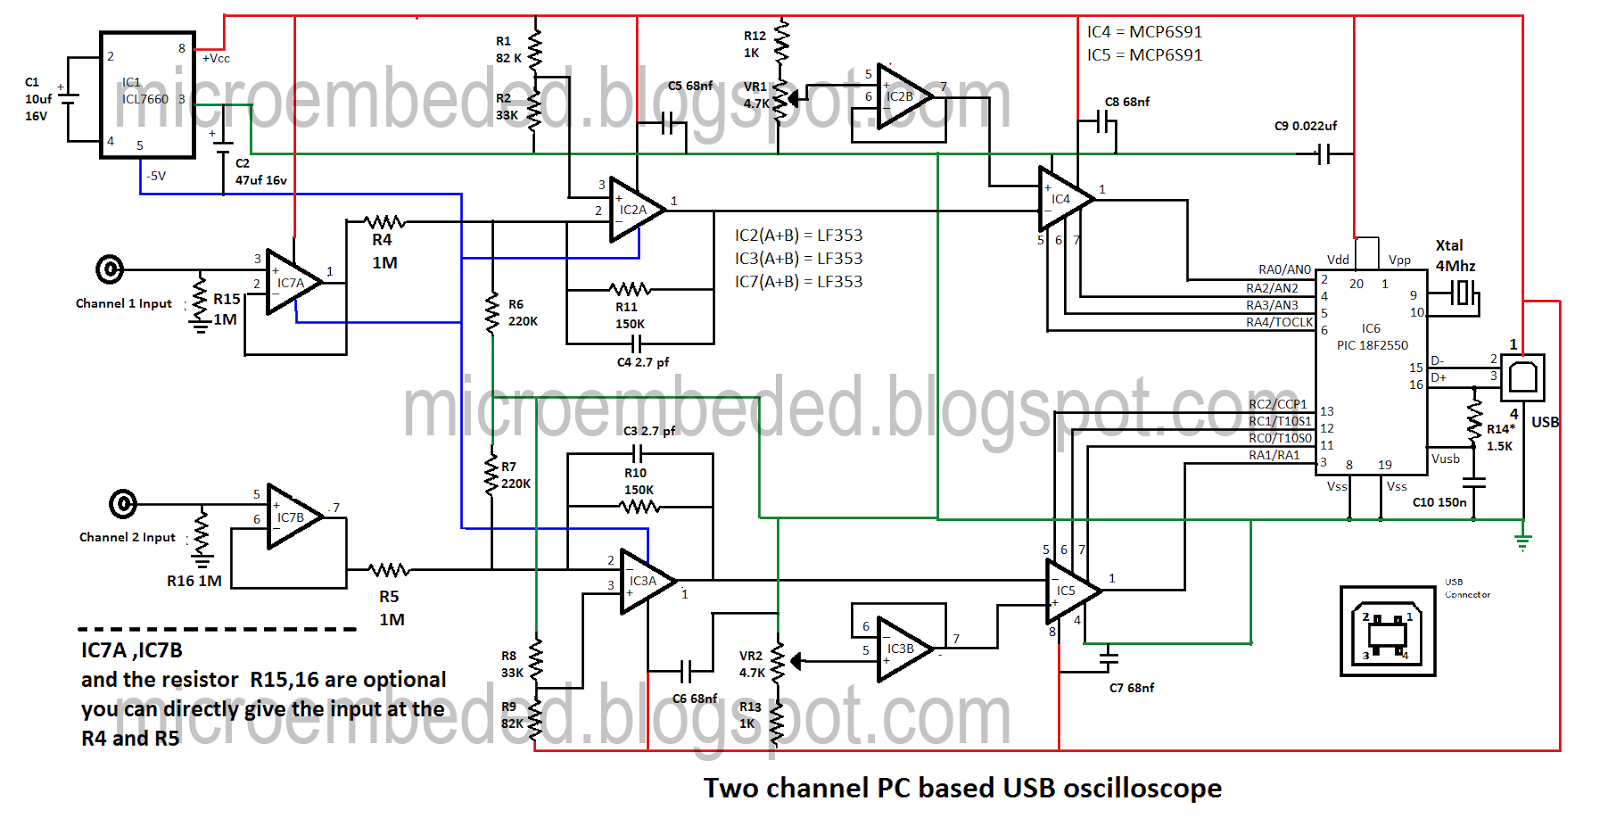 small resolution of embedded engineering two channel pc based oscilloscope usbusb oscilloscope schematic 6